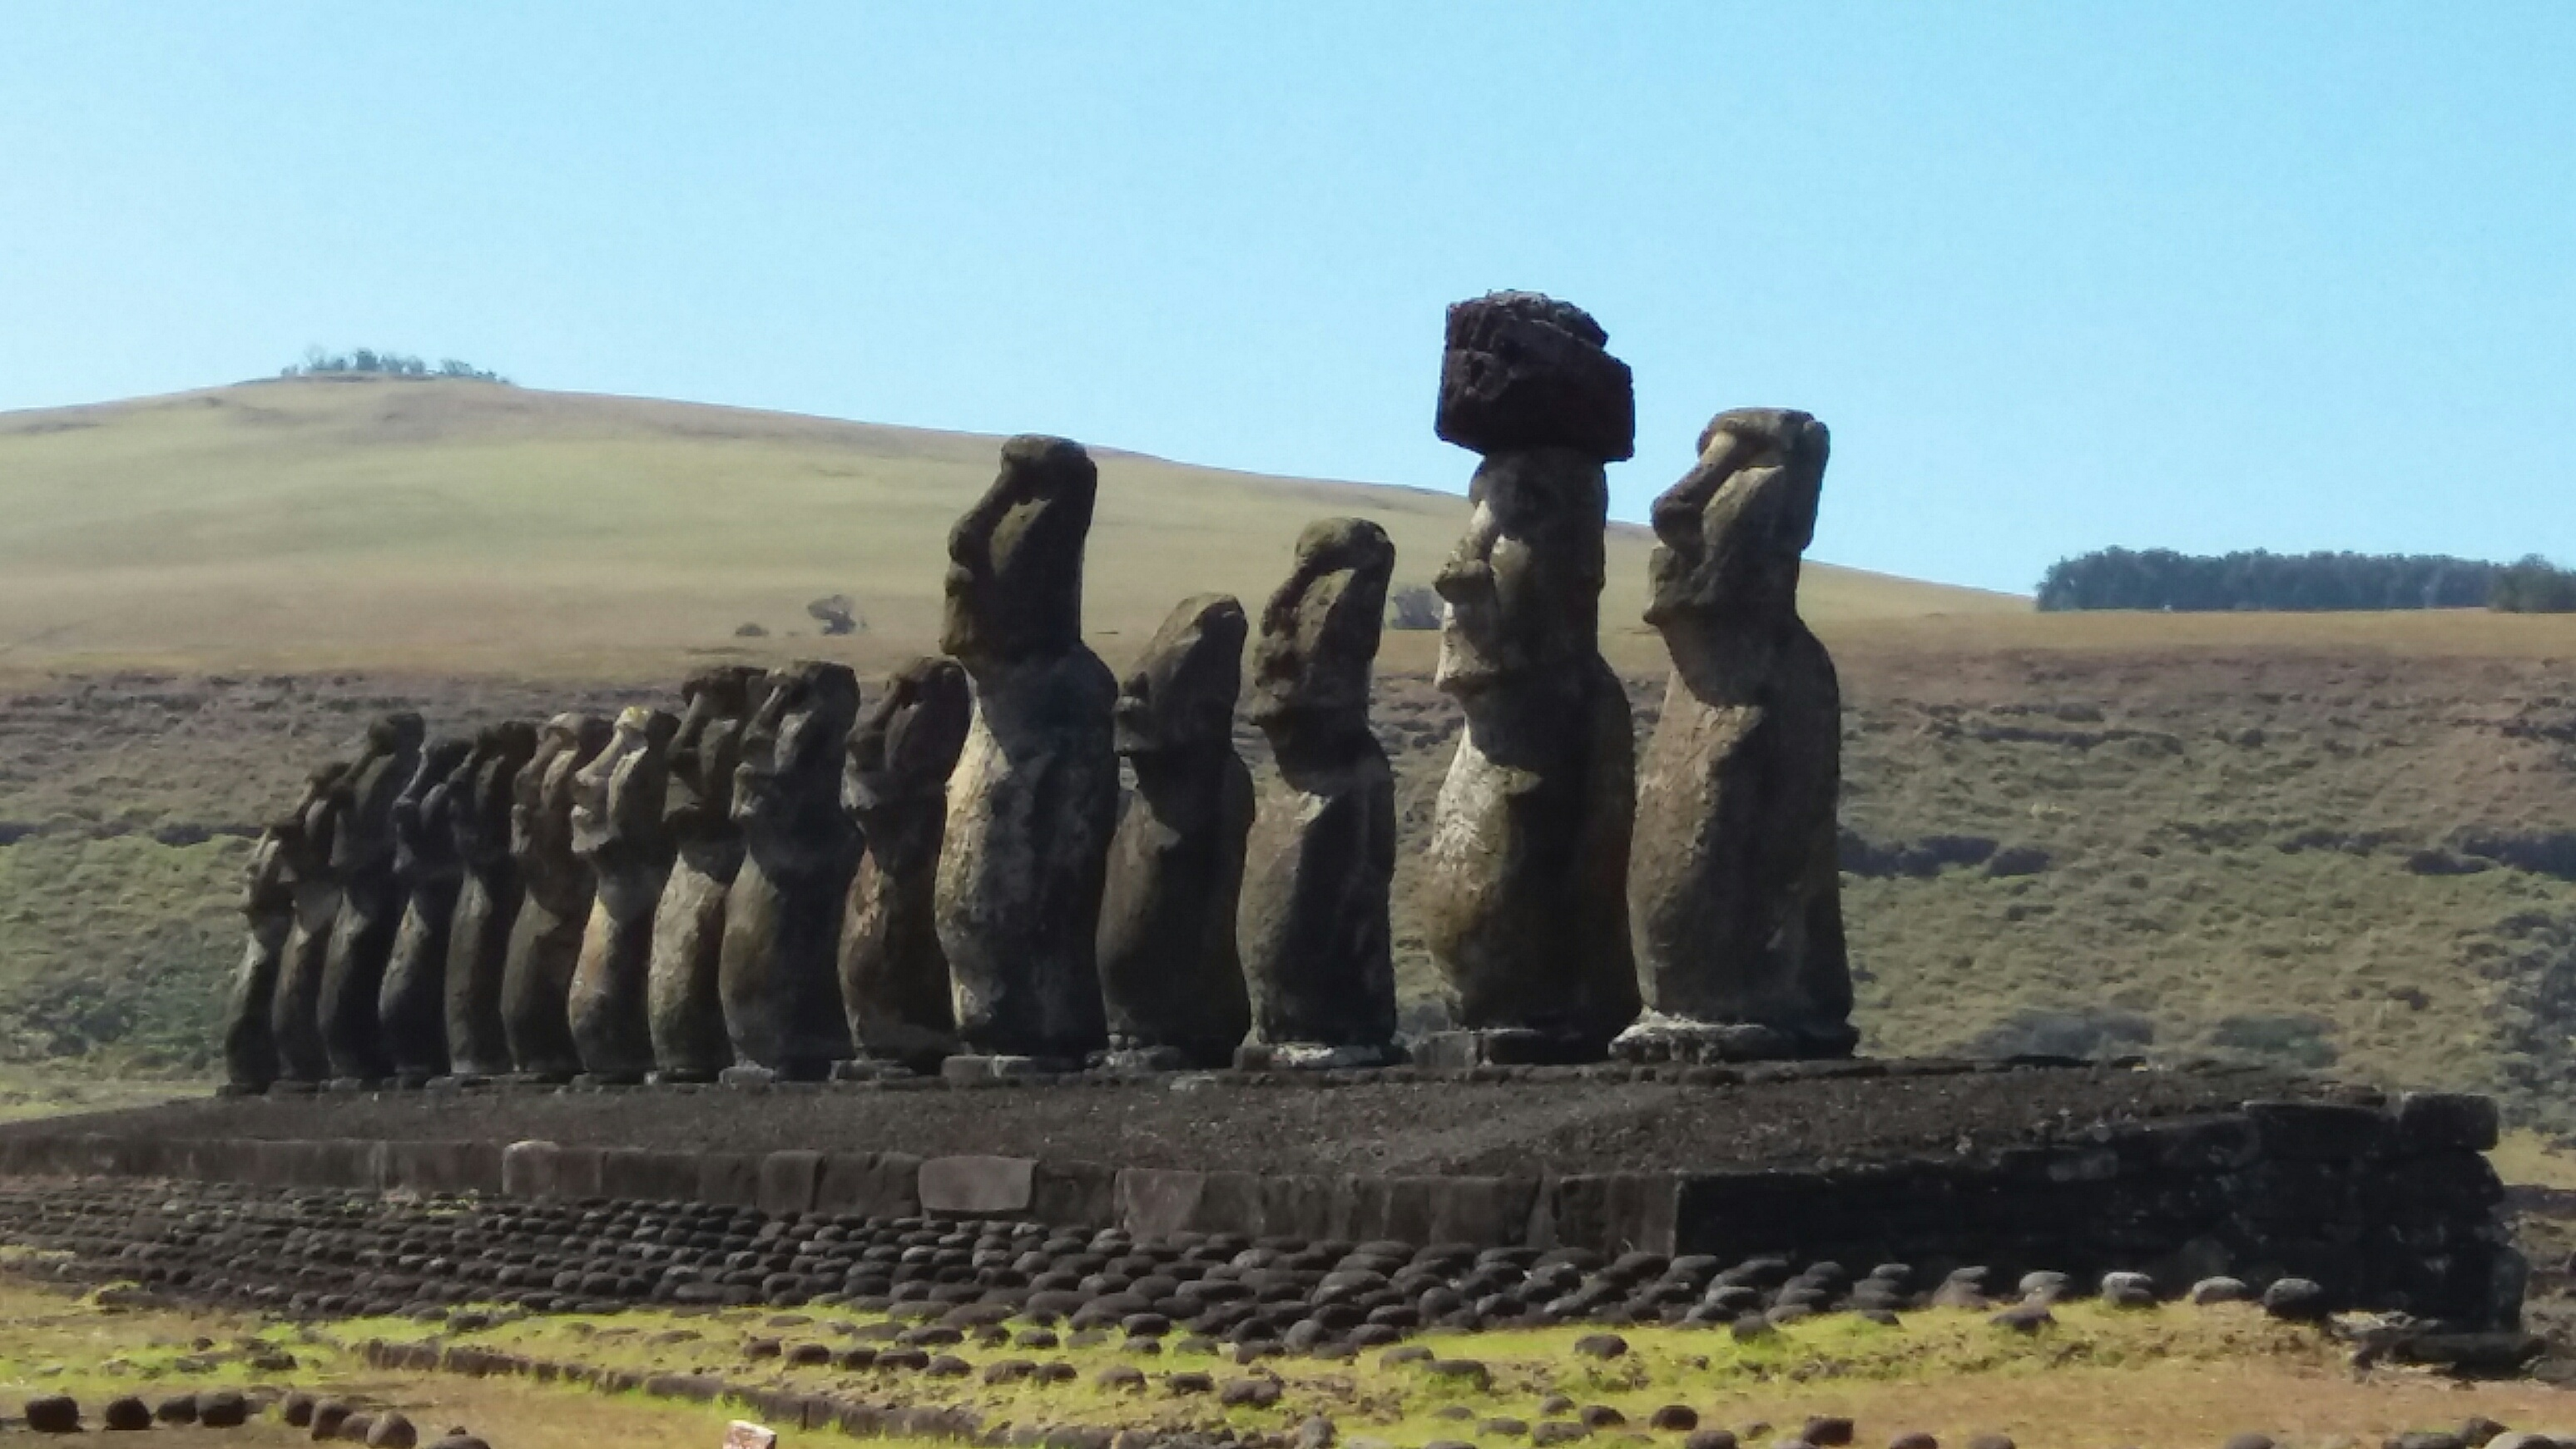 Tongariki, 15 Moai on an Ahus (stone platform). A Japanese company sponsored the reassembly of this site.